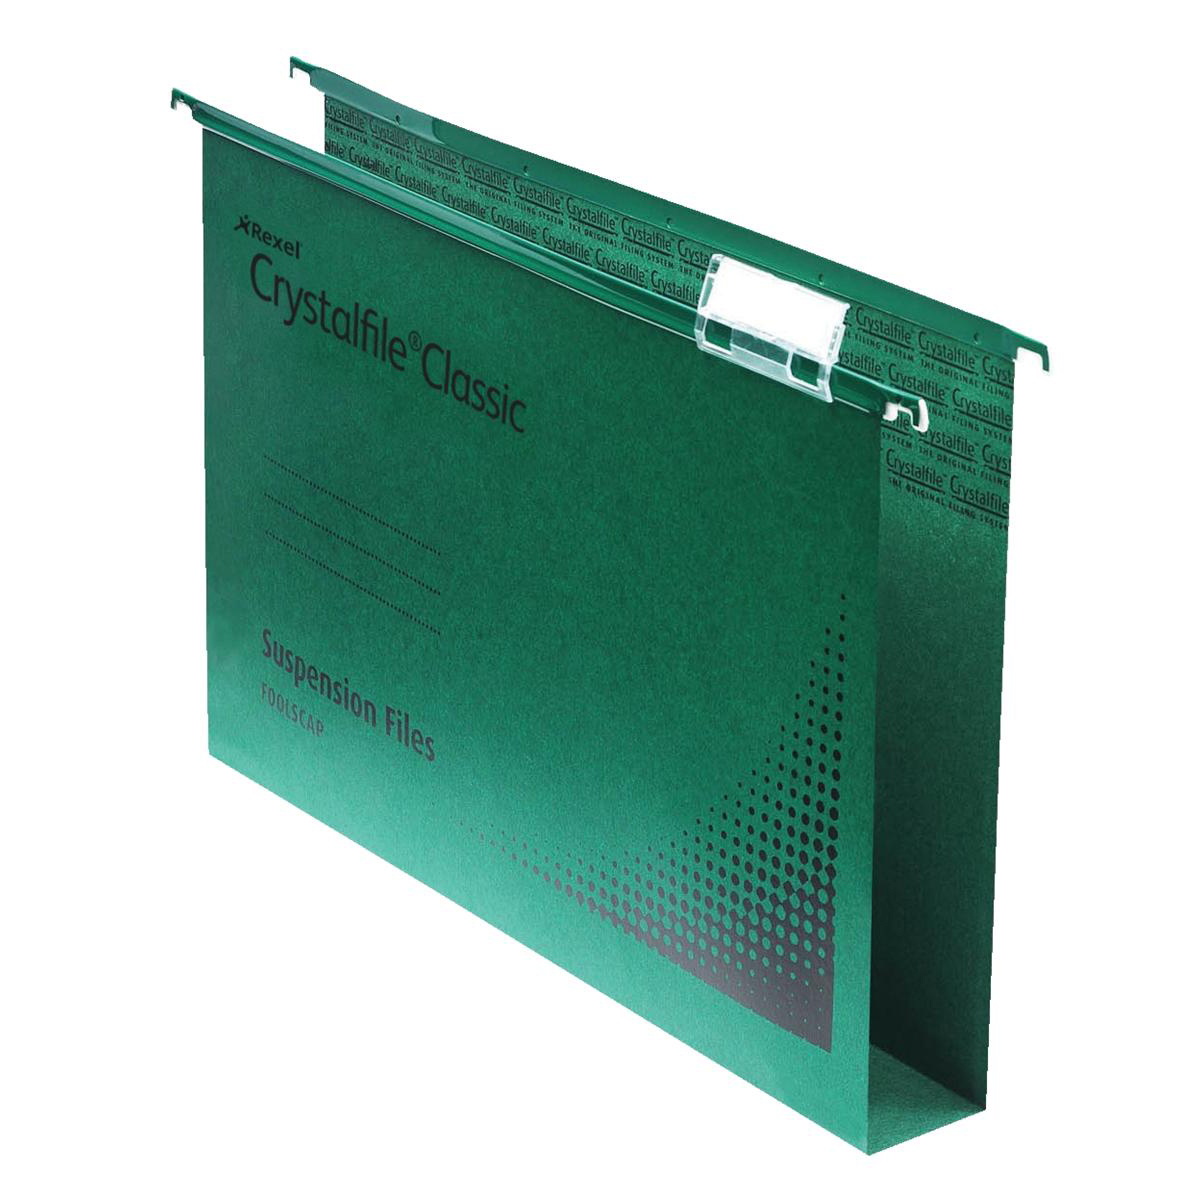 Rexel Crystalfile Classic Suspension File Manilla 30mm Wide-base230gsm Foolscap Green Ref 78041 Pack 50